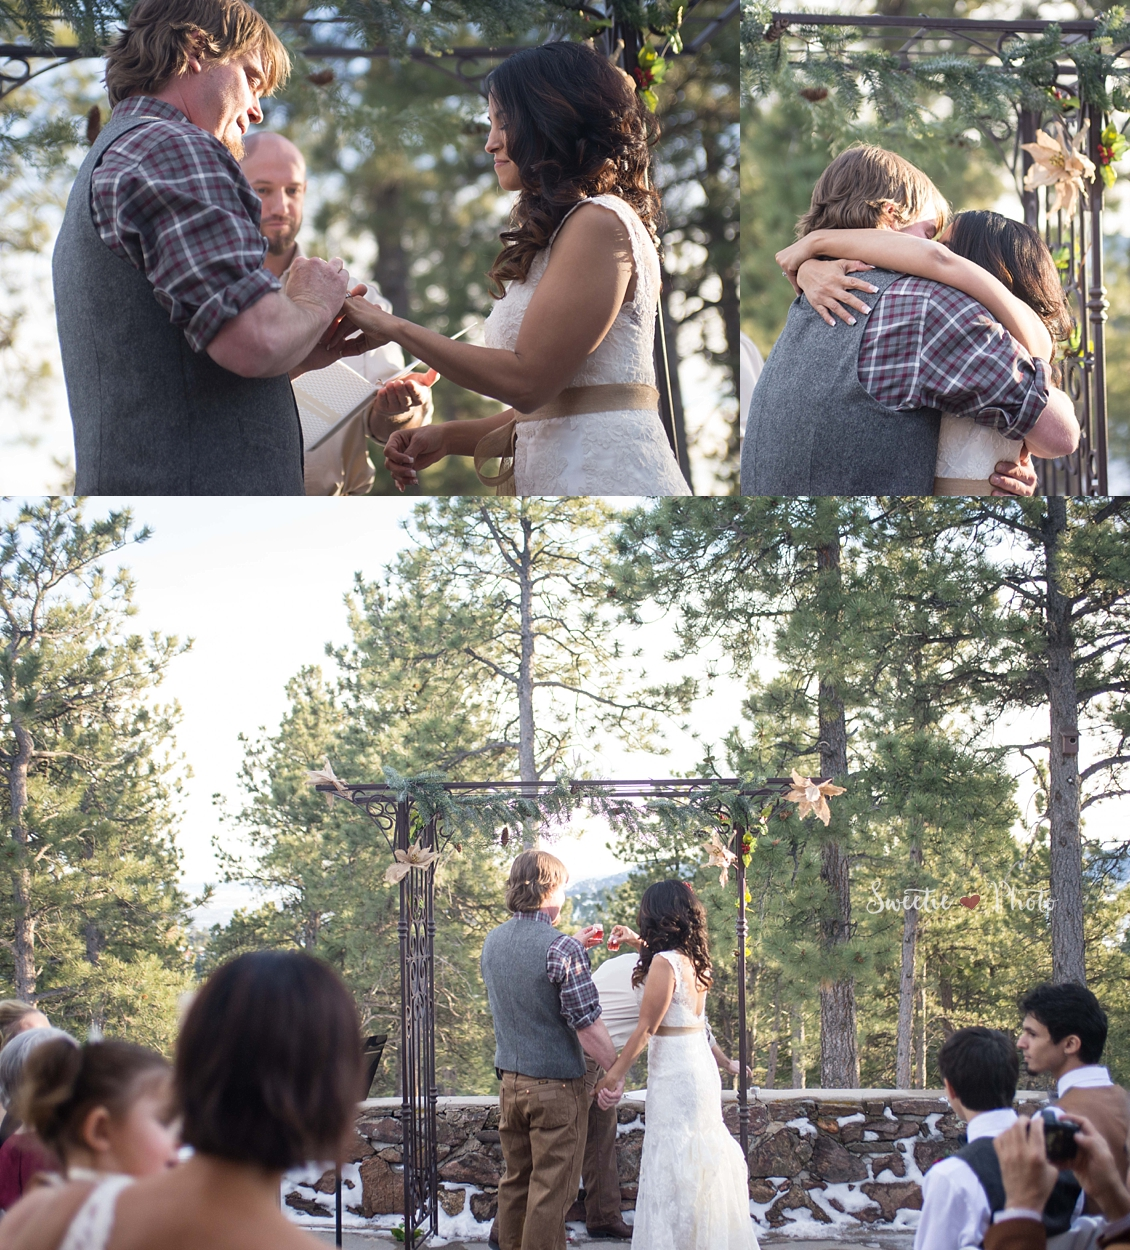 Rustic, Elegant Mountain Wedding | Boettcher Mansion | Sweetie Photo, Lifestyle Photography Colorado and Beyond!